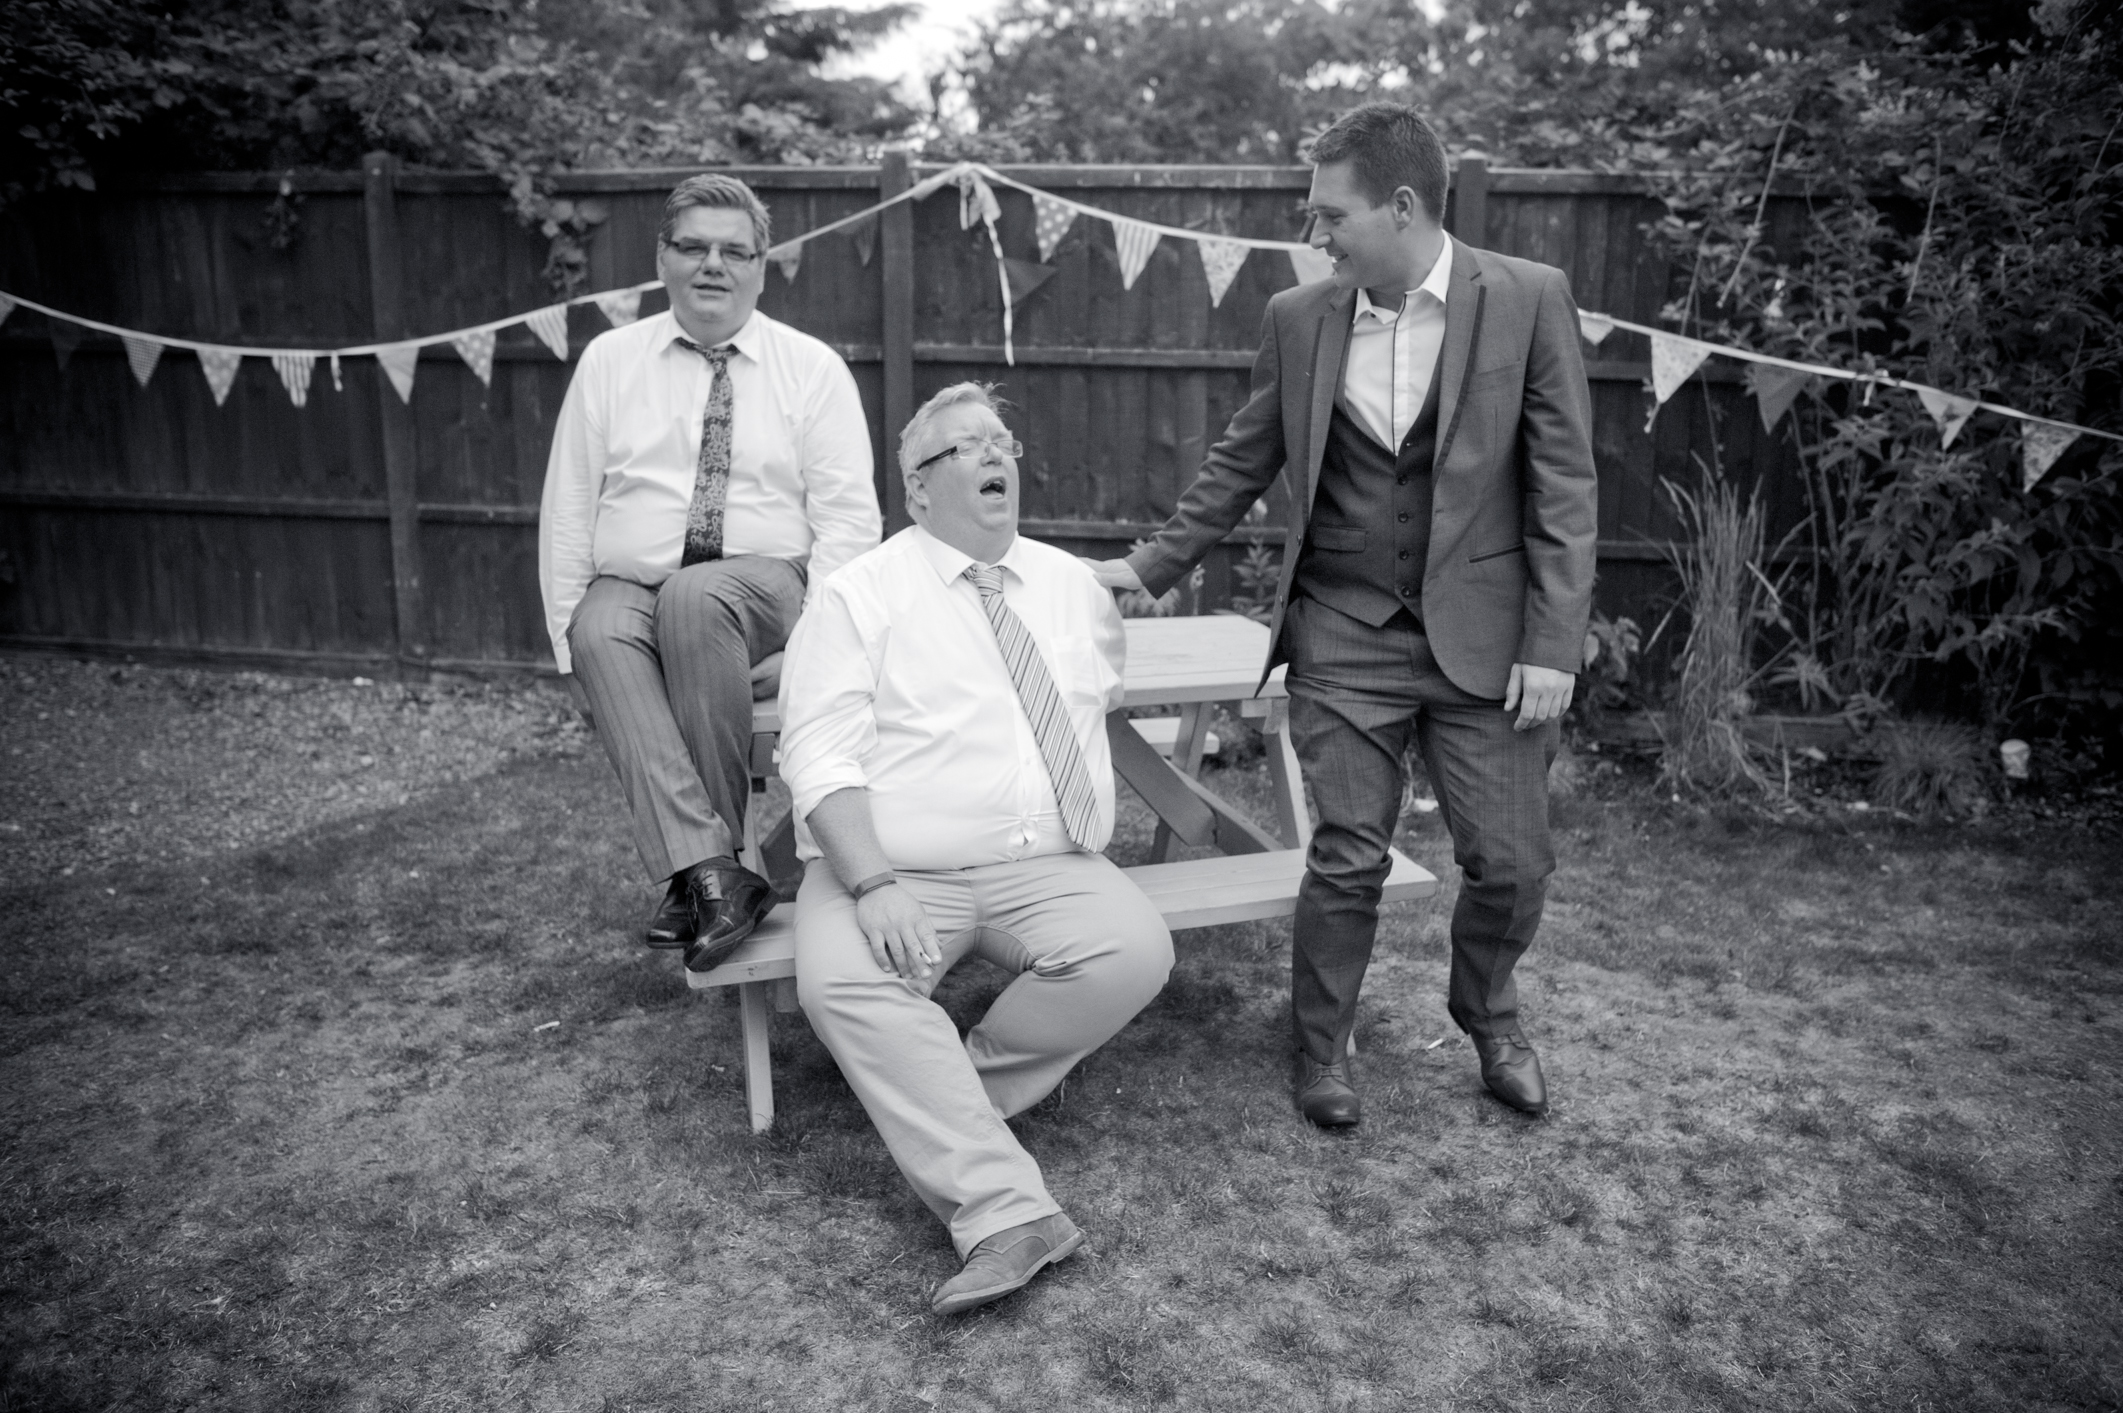 Afternoon wedding guests having a laugh.